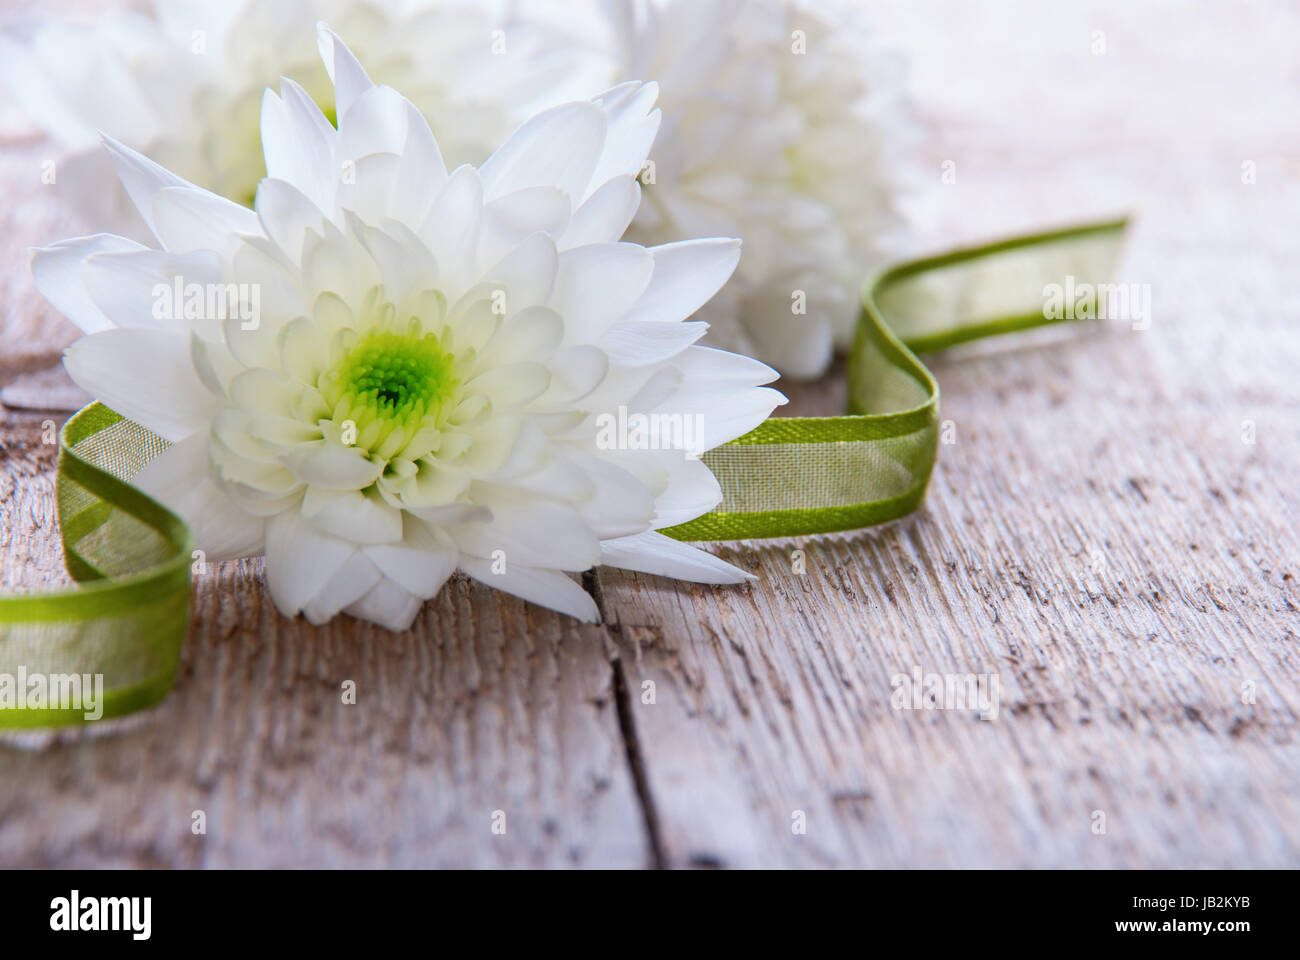 A Wooden Background with White Blossoms and a Green Ribbon - Stock Image